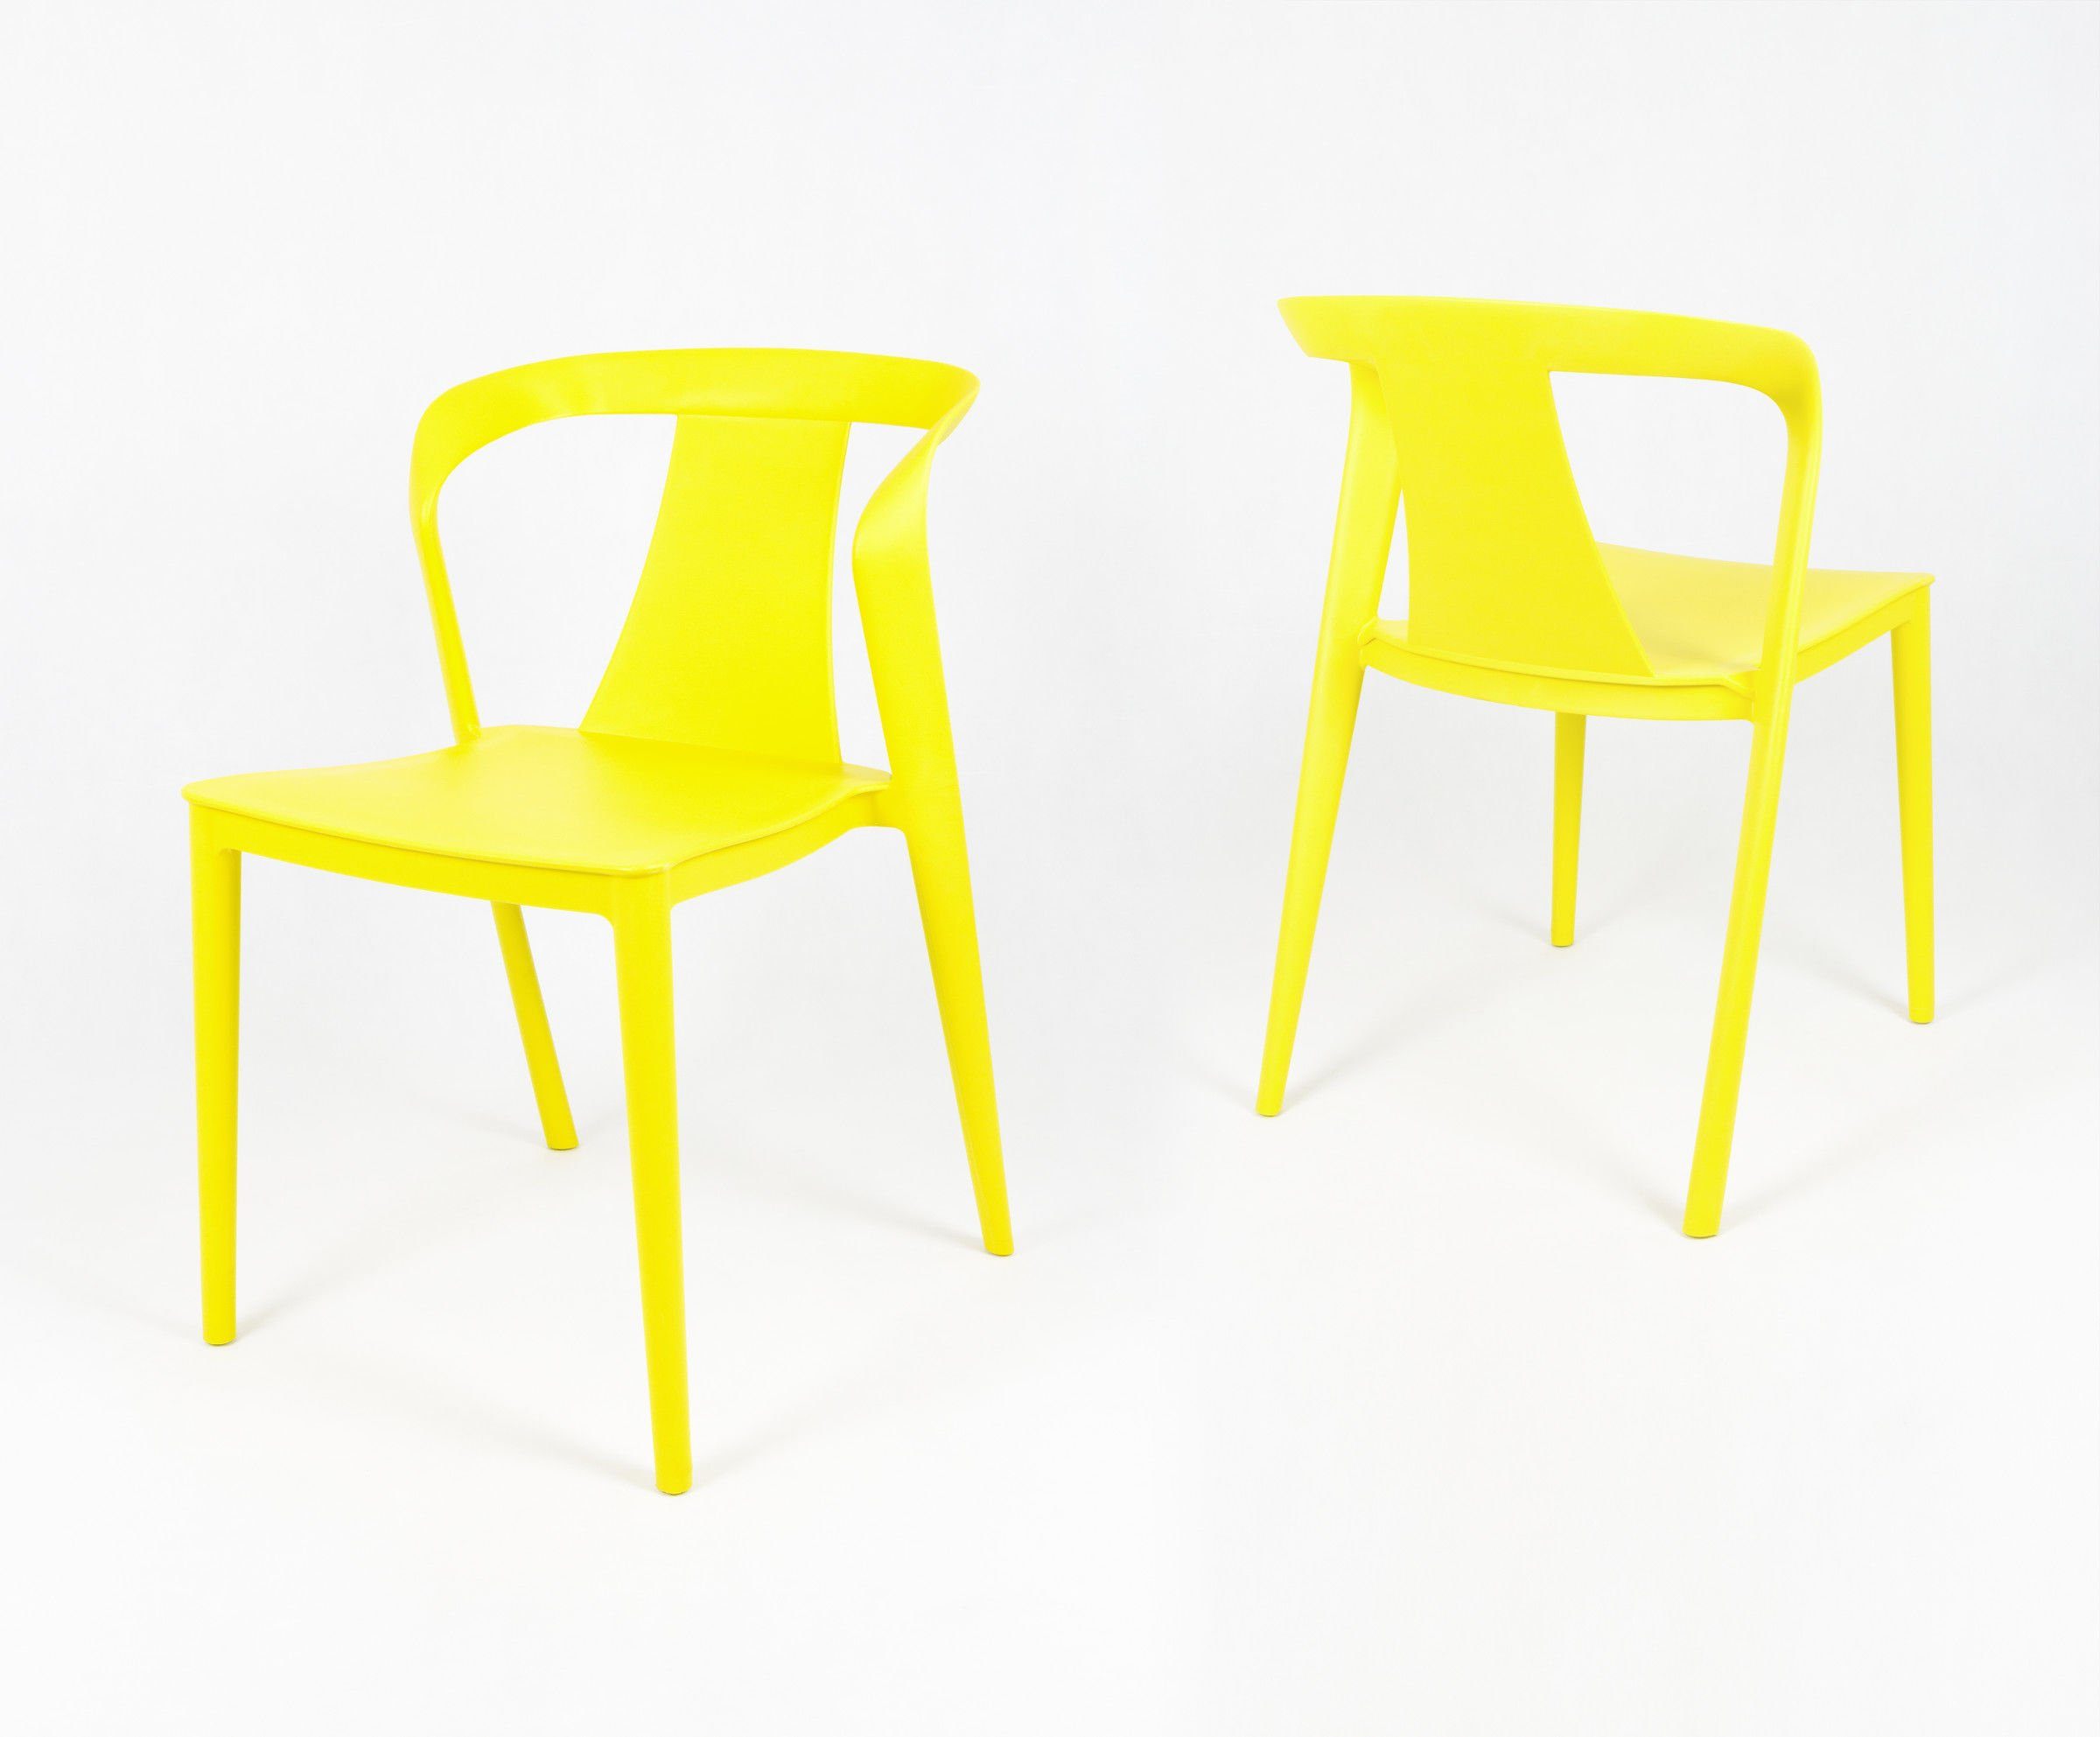 SK DESIGN KR052 YELLOW POLYPROPYLENE CHAIR Click To Zoom ...